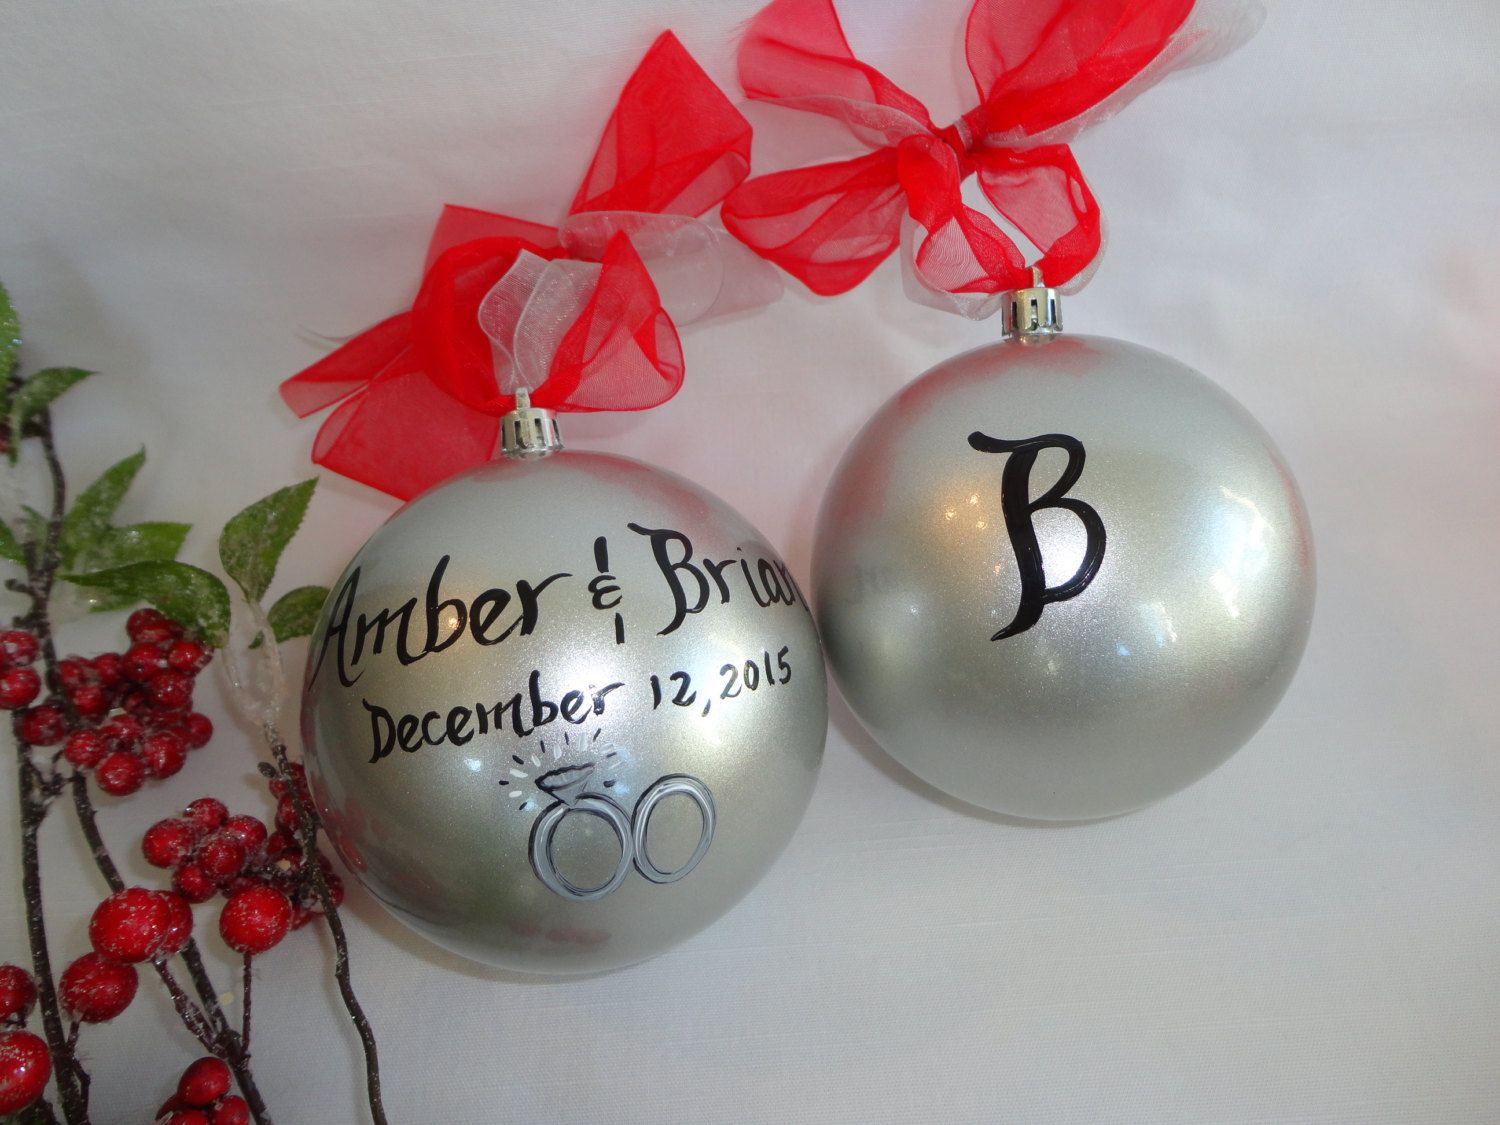 Bridal Ornaments - Wedding Favors - Hand Painted PERSONALIZED ...